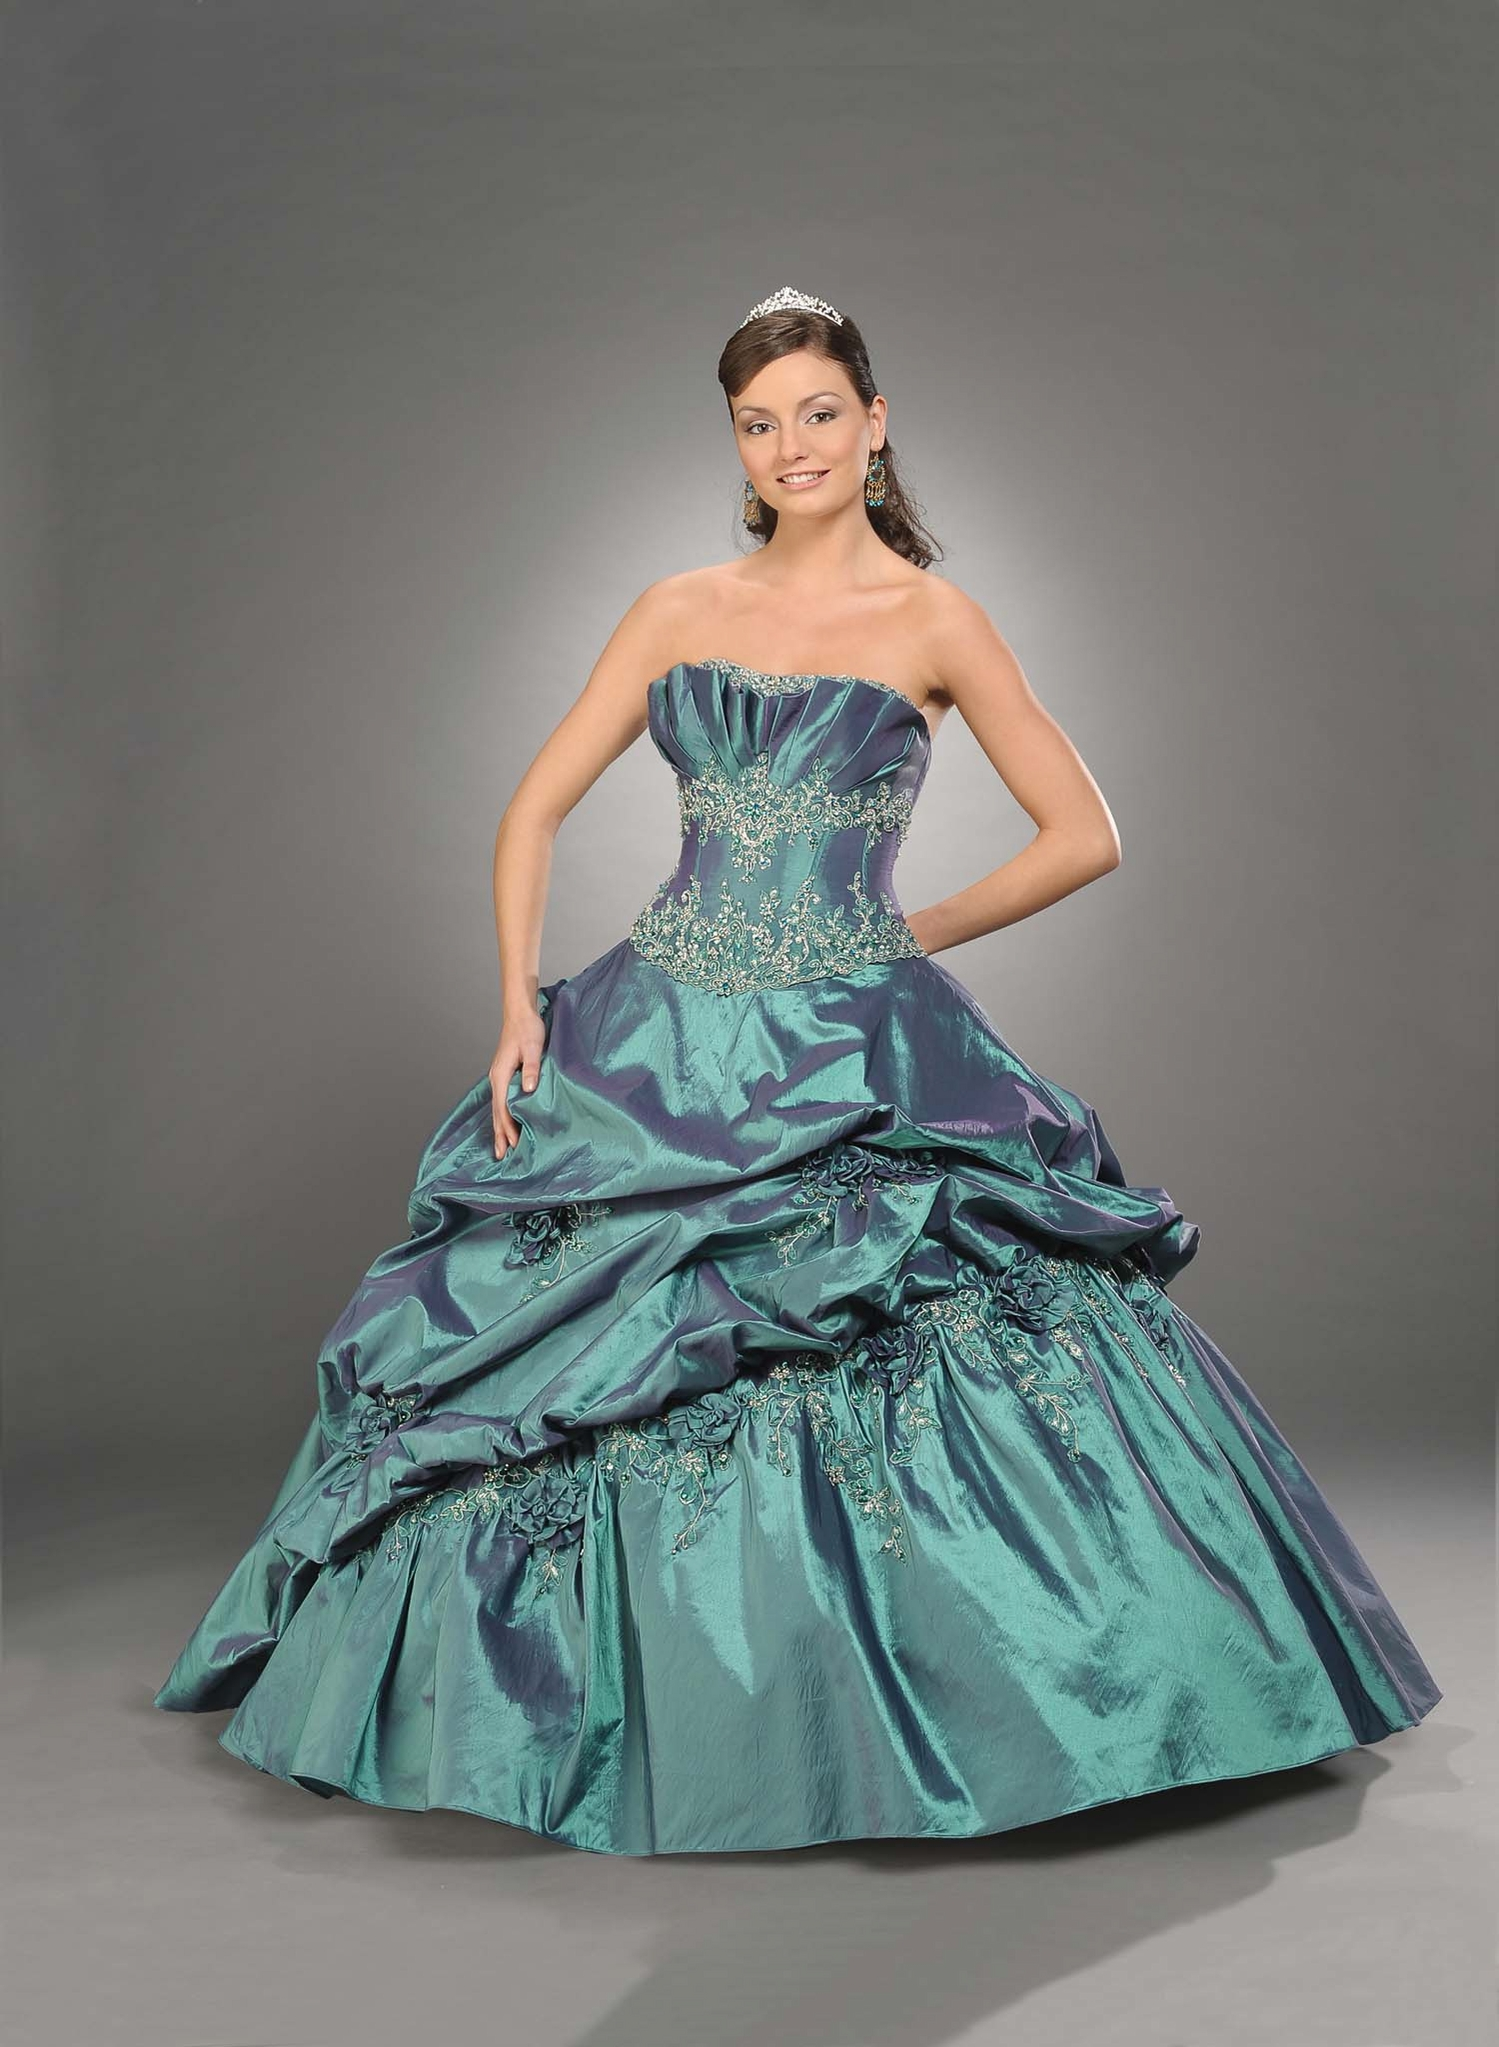 Teal Ball Gown Strapless Full Length Quinceanera Dresses With Beading And Twist Draped